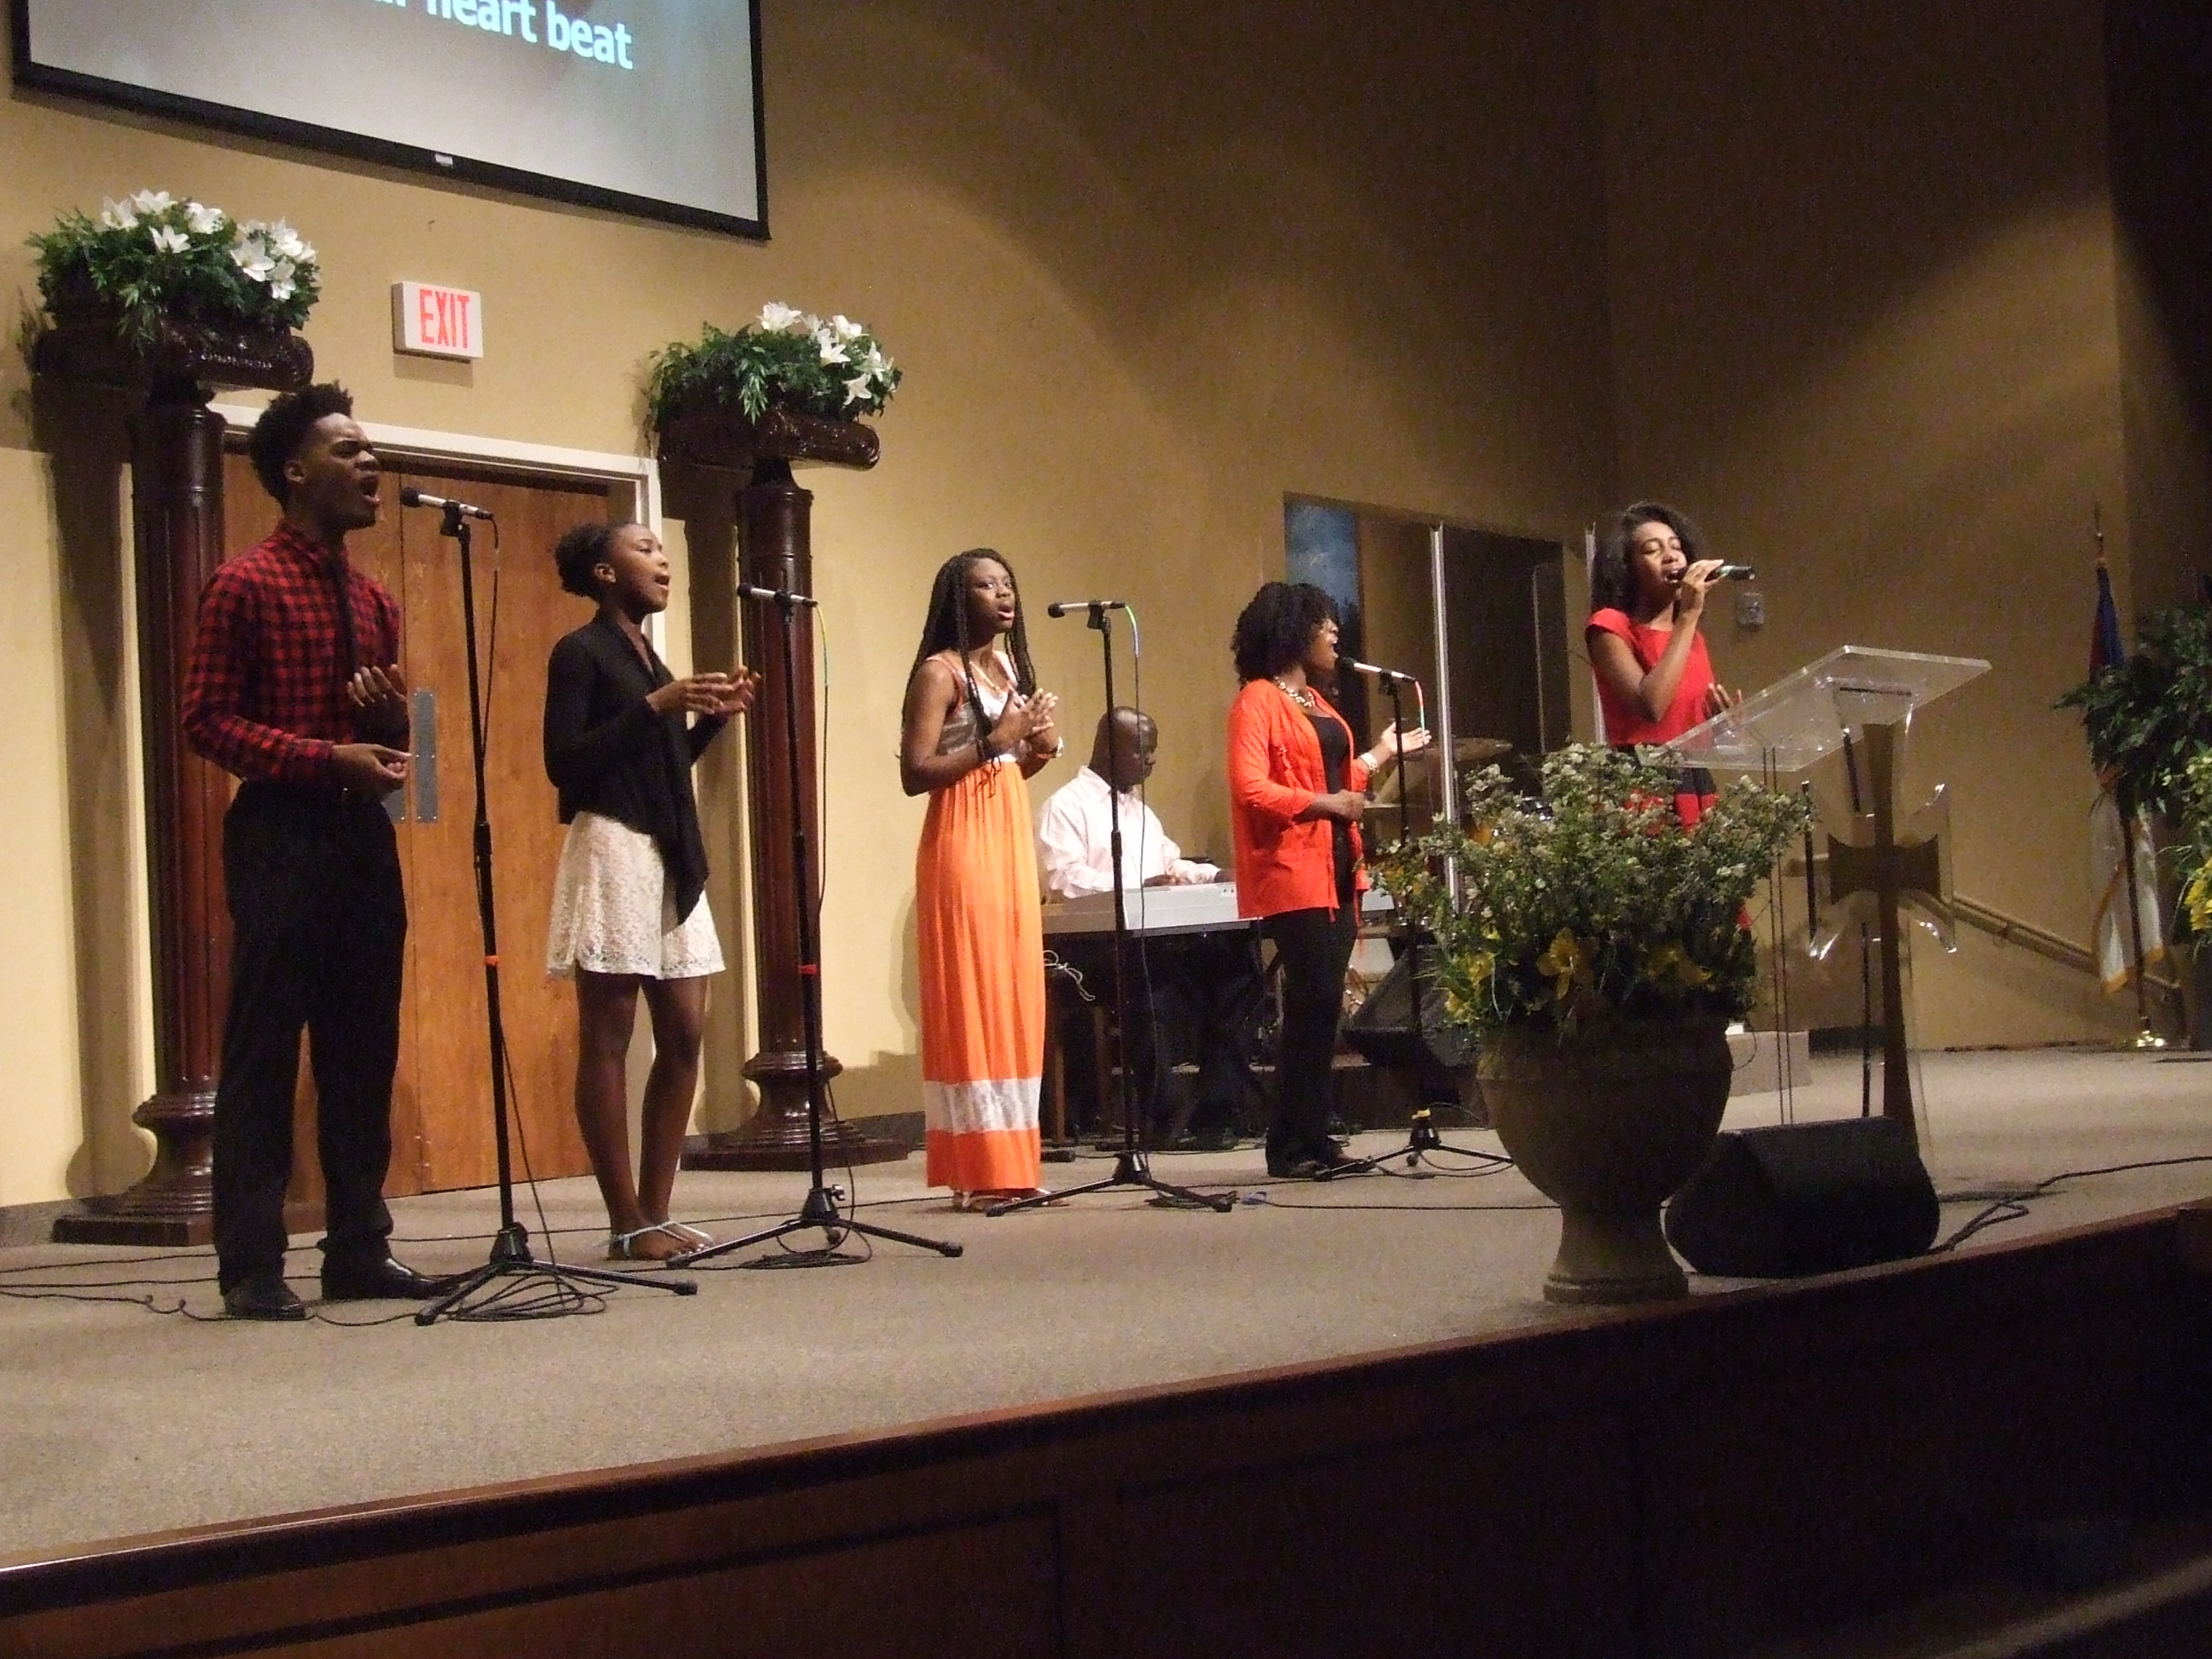 Teens doing praise and worship on the stage